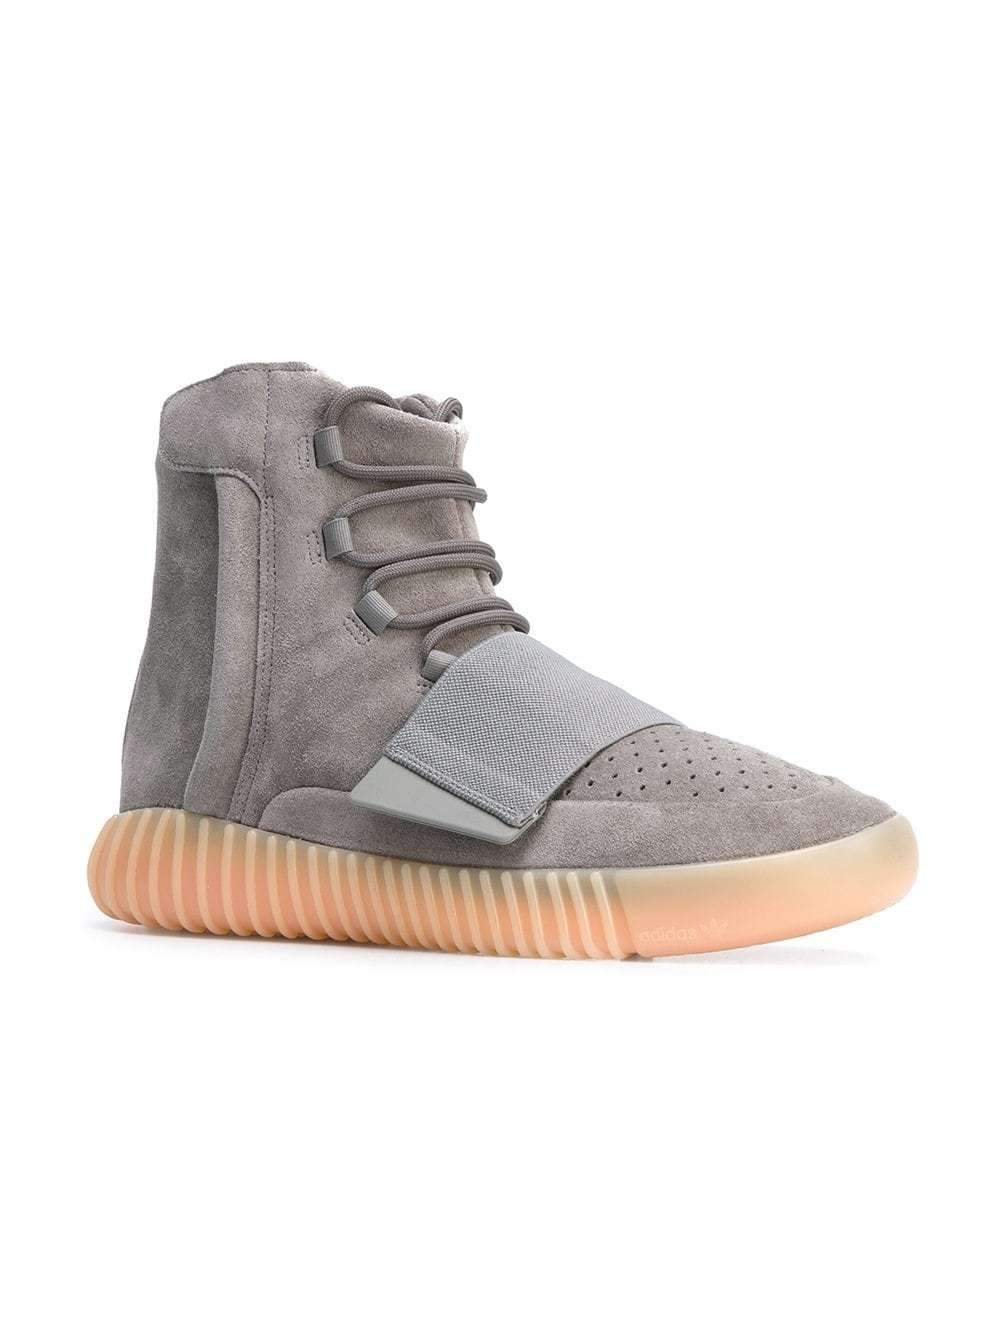 a486185e3 Adidas x Yeezy Boost 750 Light Grey – Europe